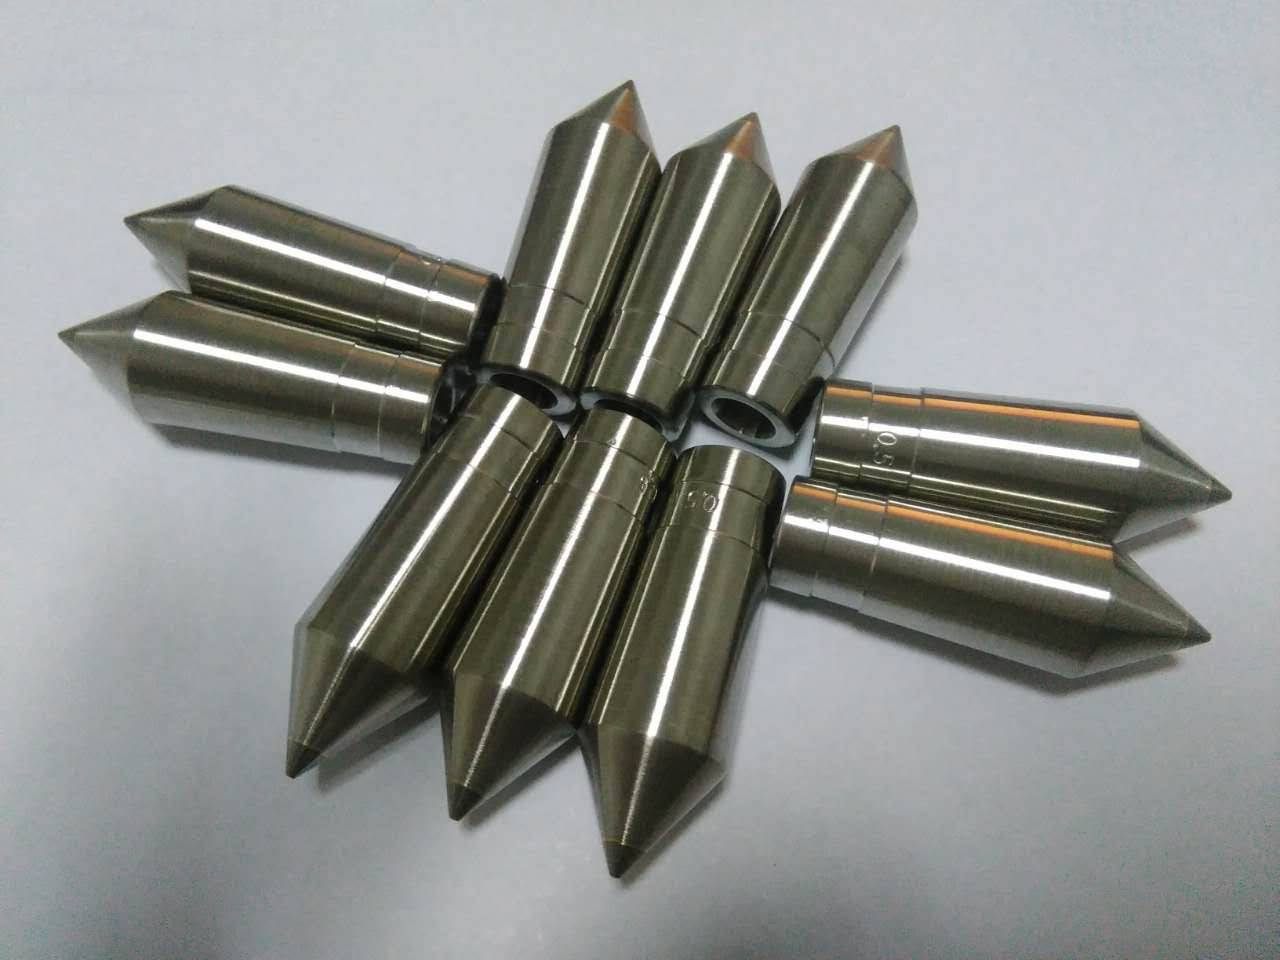 extrusion tips and dies for extrusion crosshead